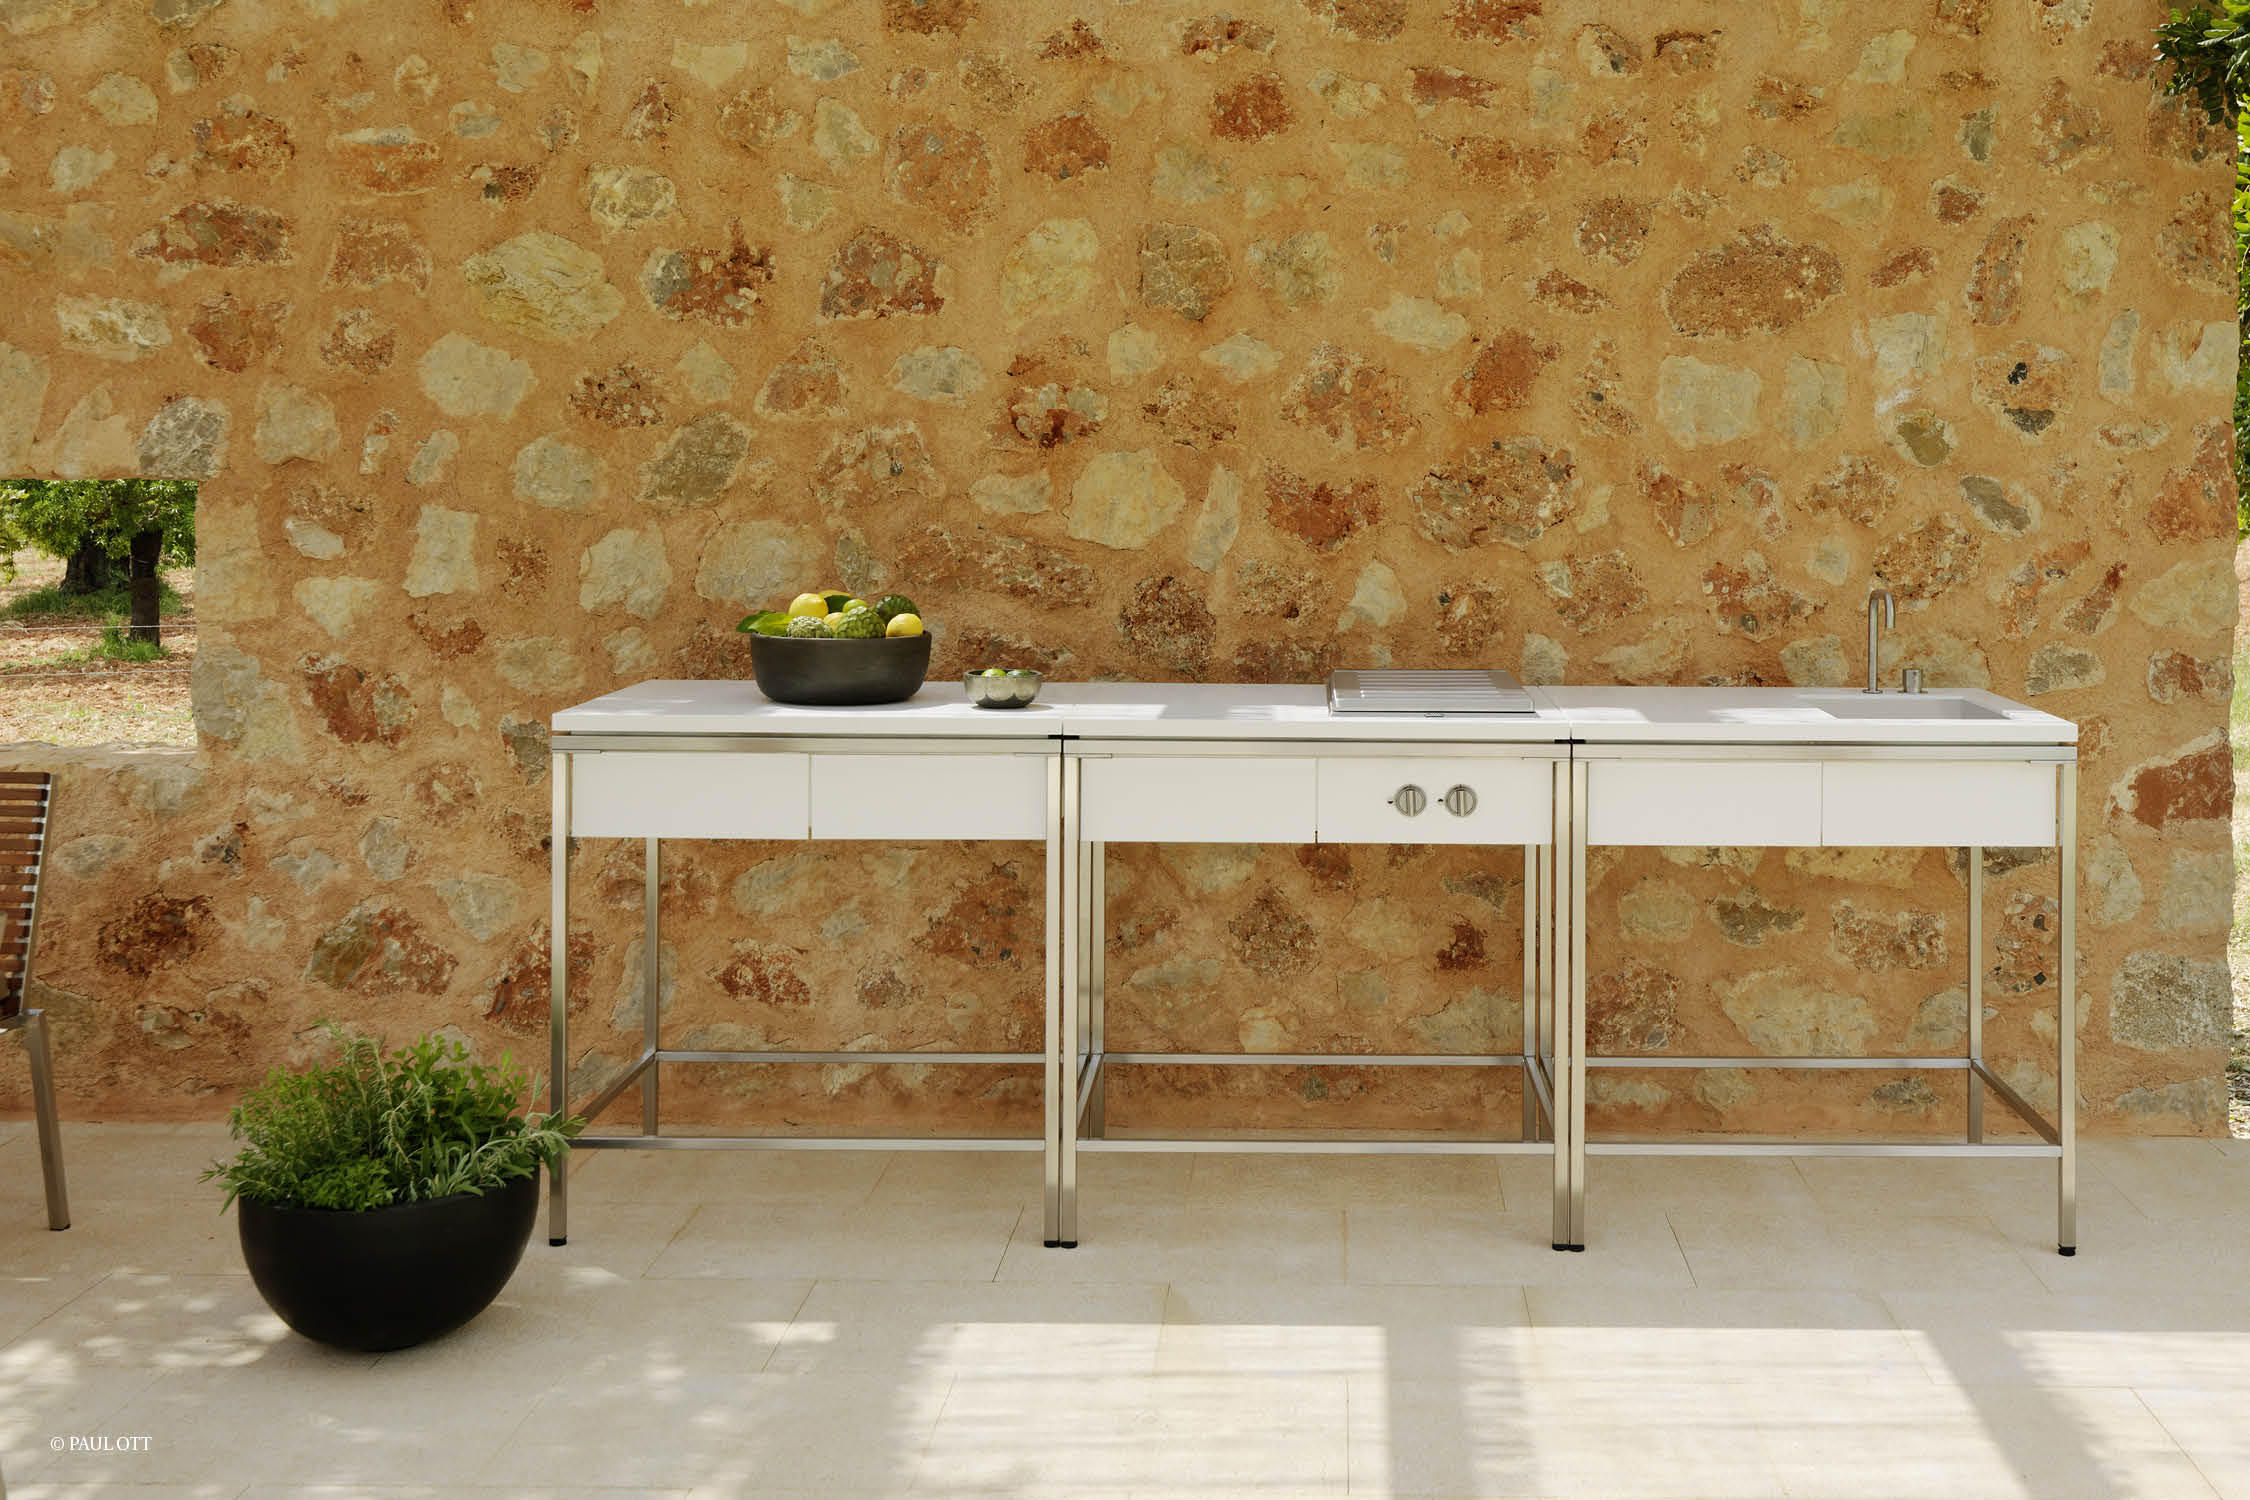 Viteo Outdoor Kitchen Price